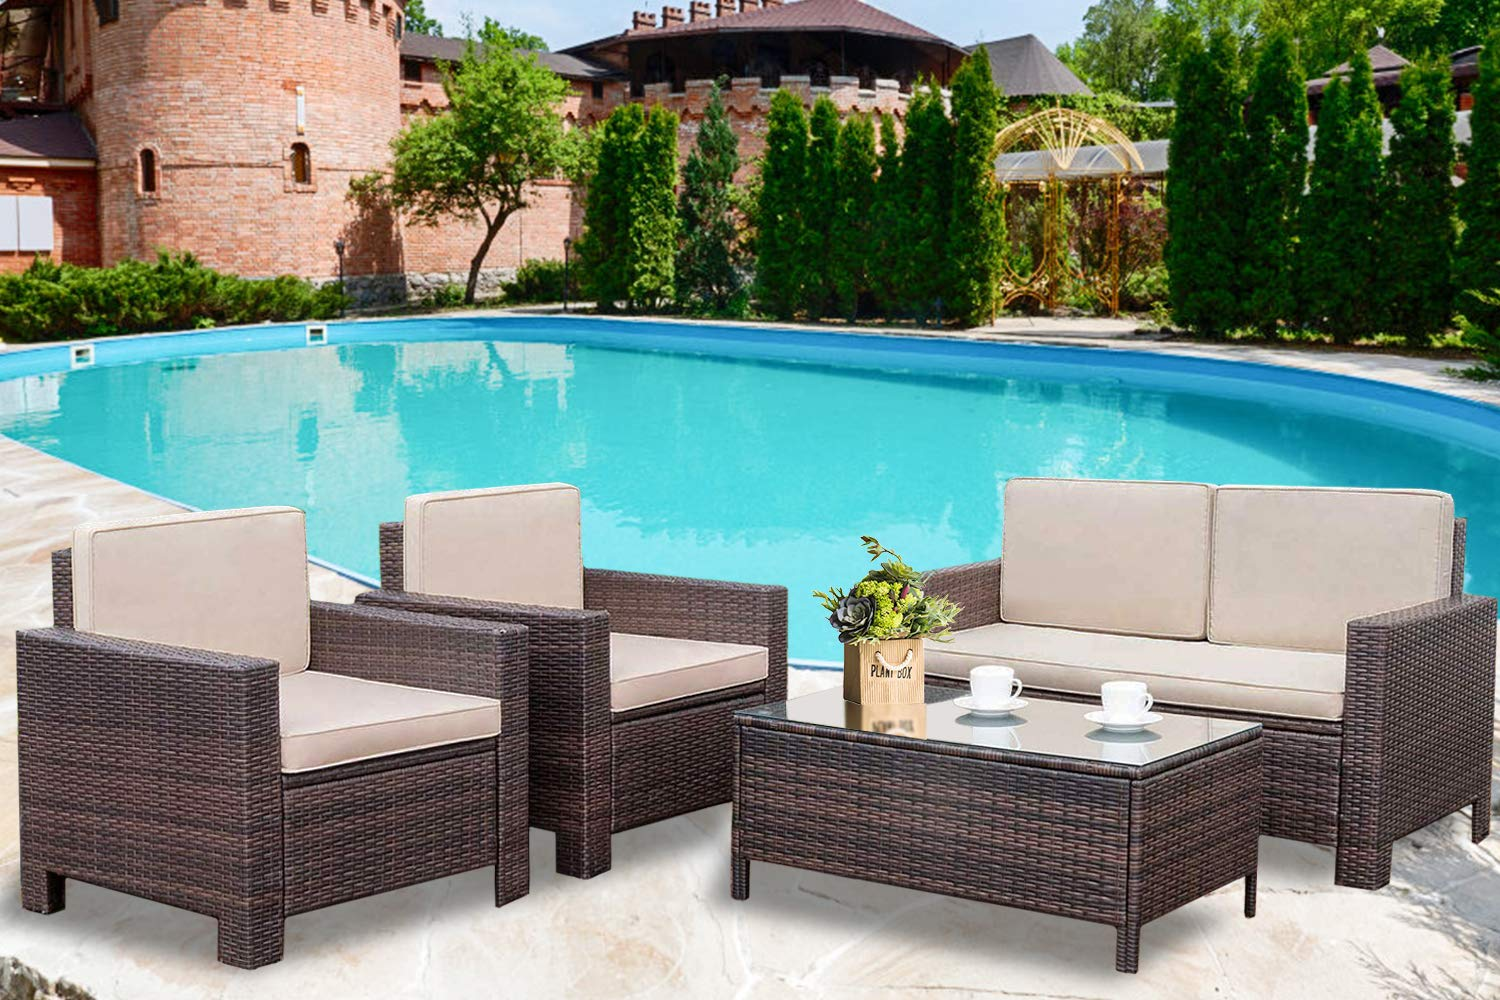 Patio Furniture Set 4 Pieces Outdoor Wicker Sofa Rattan Chair Garden Conversation Set Bistro Sets with Coffee Table for Porch Poolside Backyard by FDW